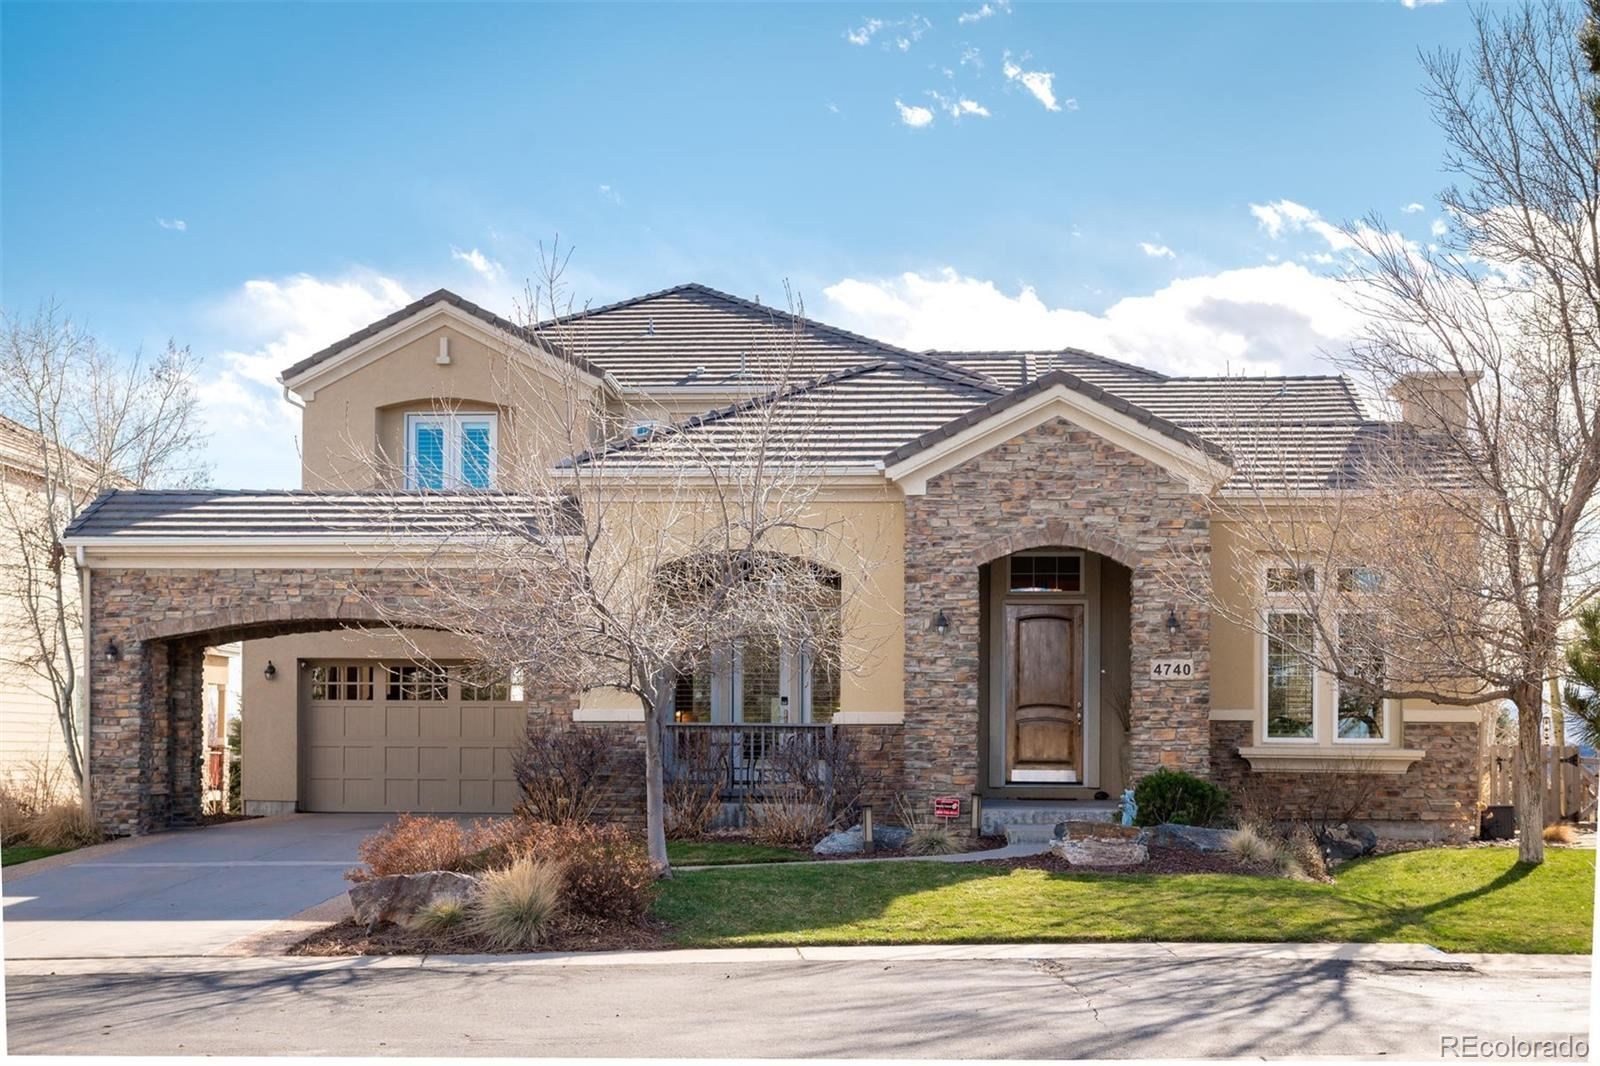 4740 W 105th Drive, Westminster, CO 80031 - #: 9951370